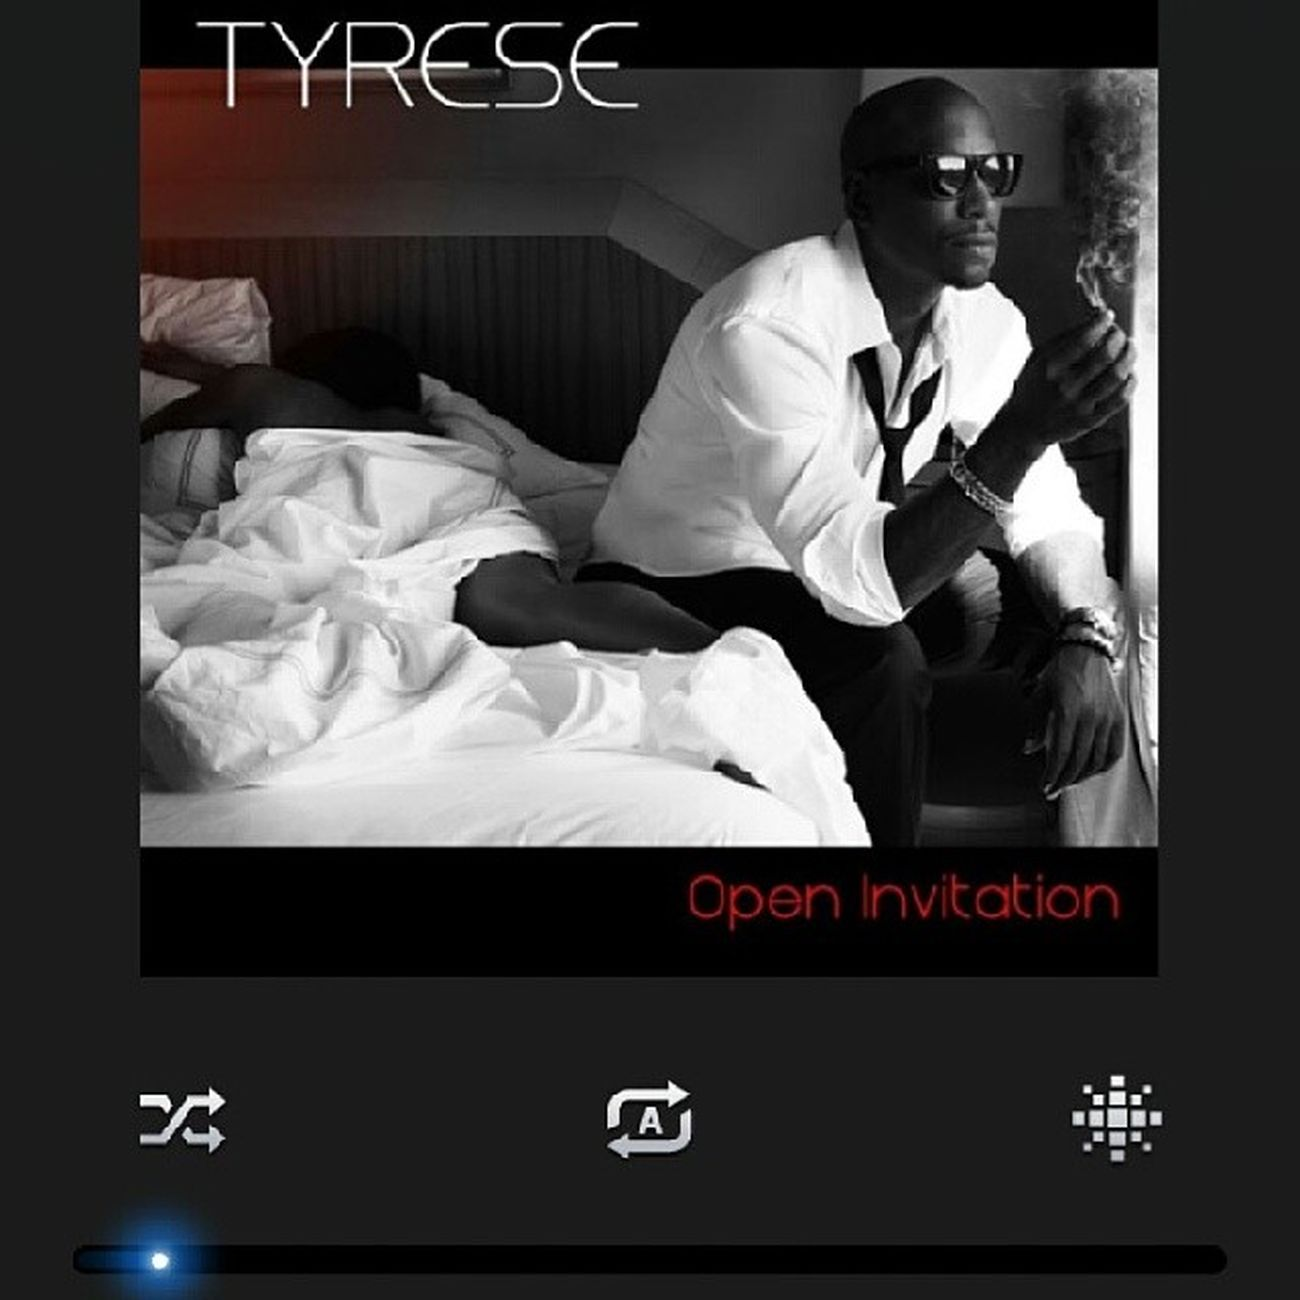 Feeling d tyrese flow! Blacktye Bestinme Openinvitation Music my addiction....